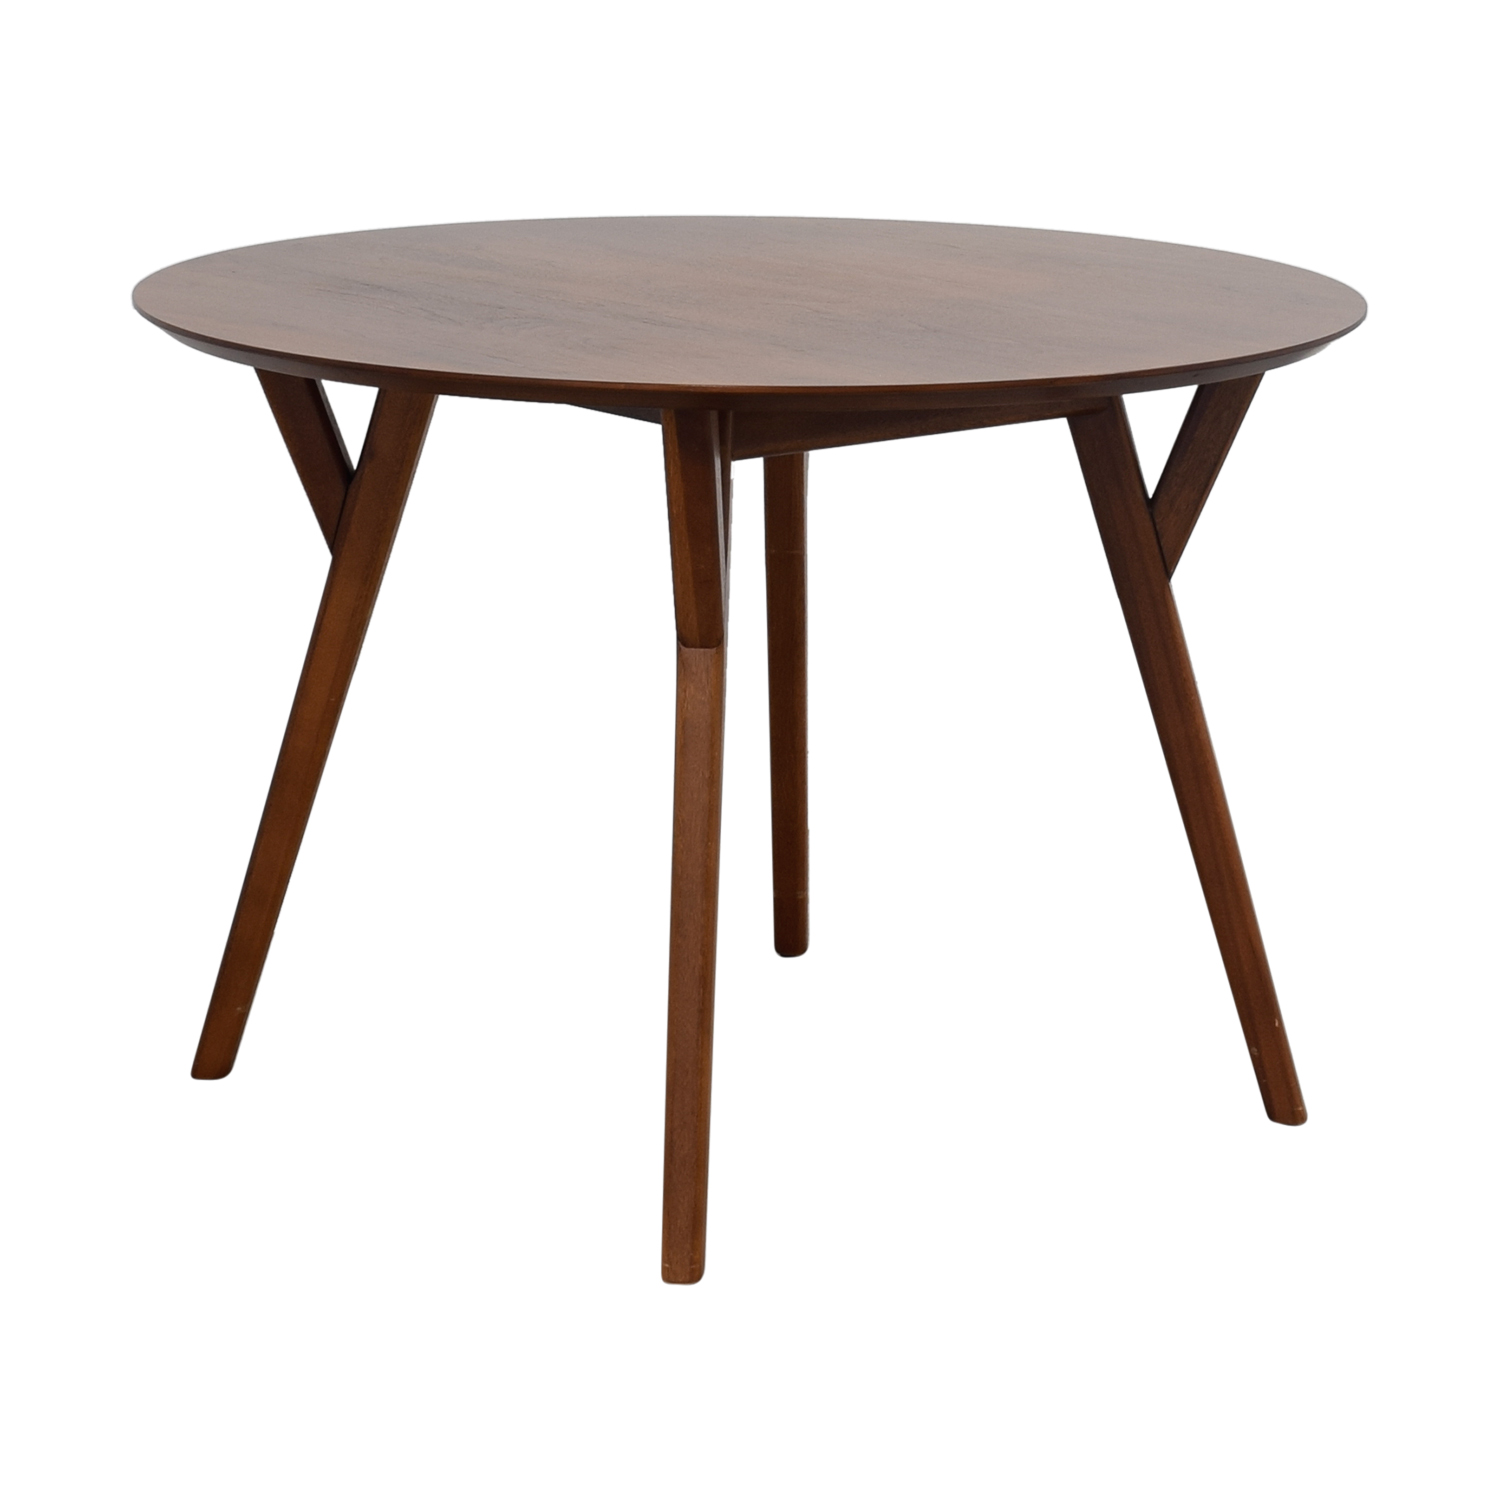 39 off west elm west elm mid century walnut round dining table tables. Black Bedroom Furniture Sets. Home Design Ideas